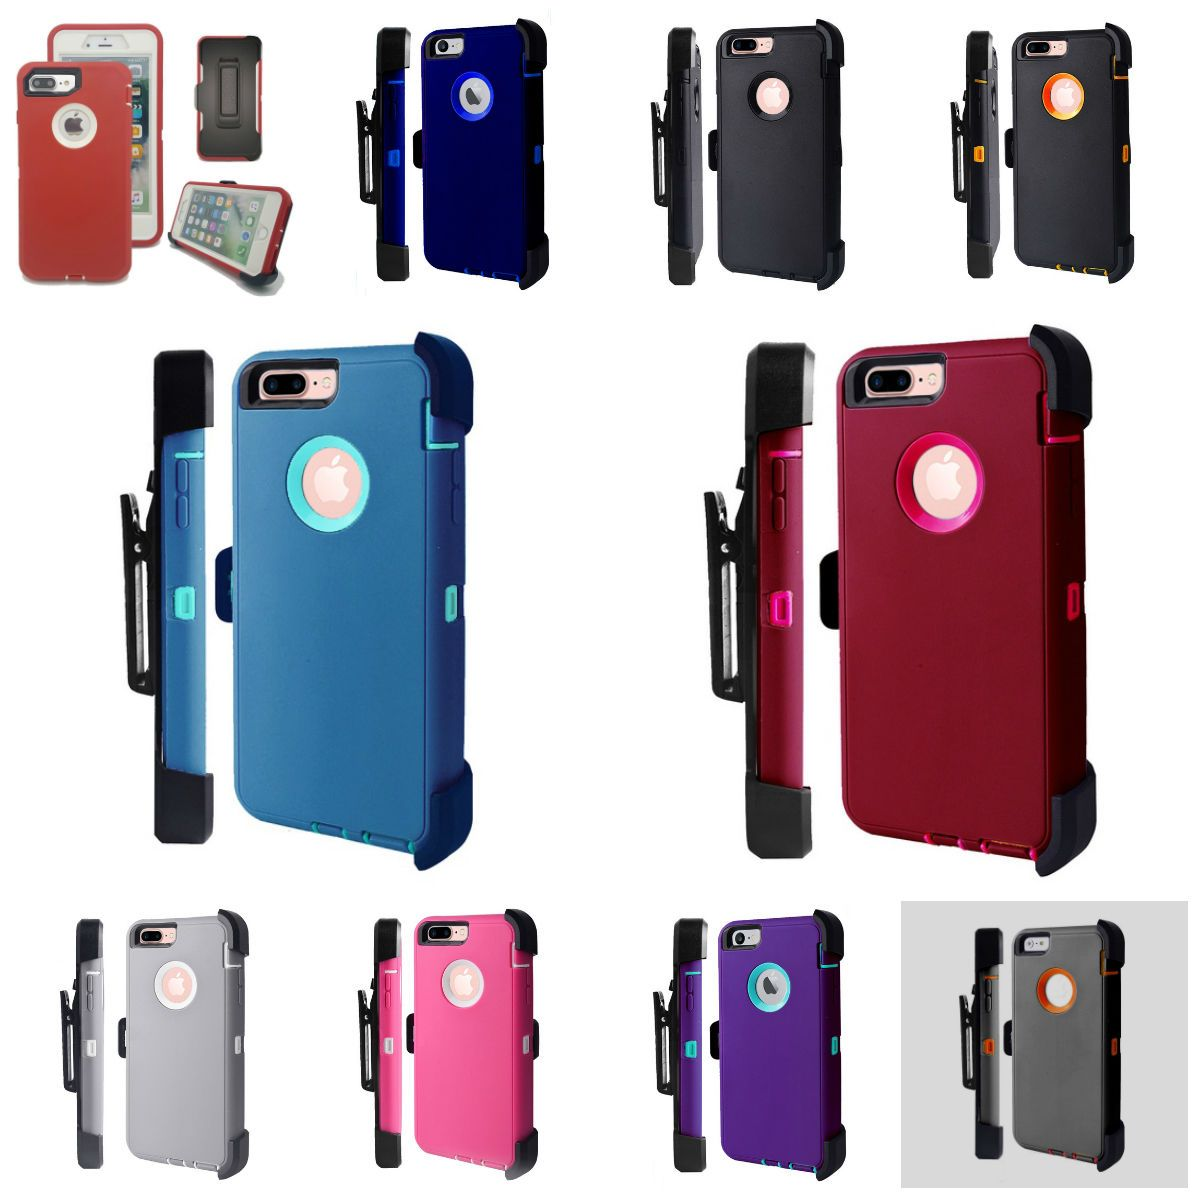 Defender rugged case screen protector holster fits for